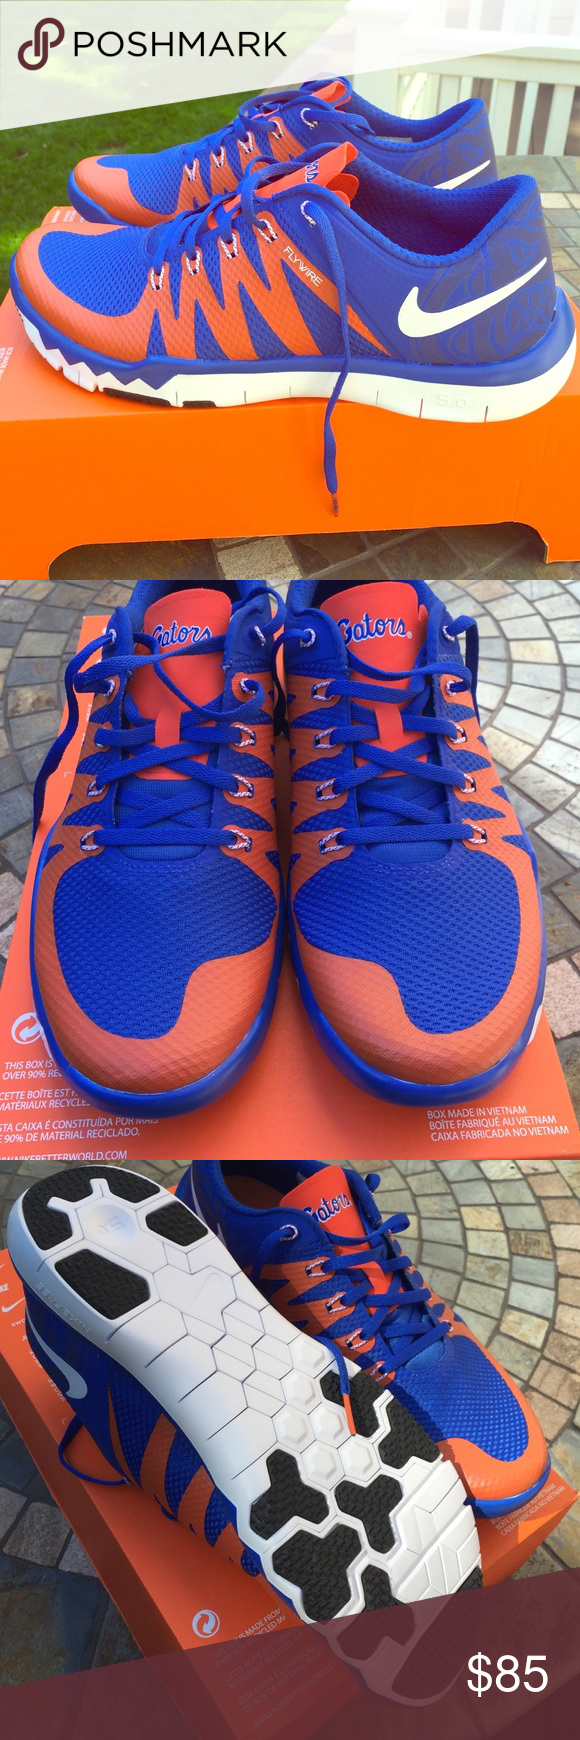 054f535c90d0 ... usa brand new nike free trainer 5.0 official fl gators official florida  gator nike free runs